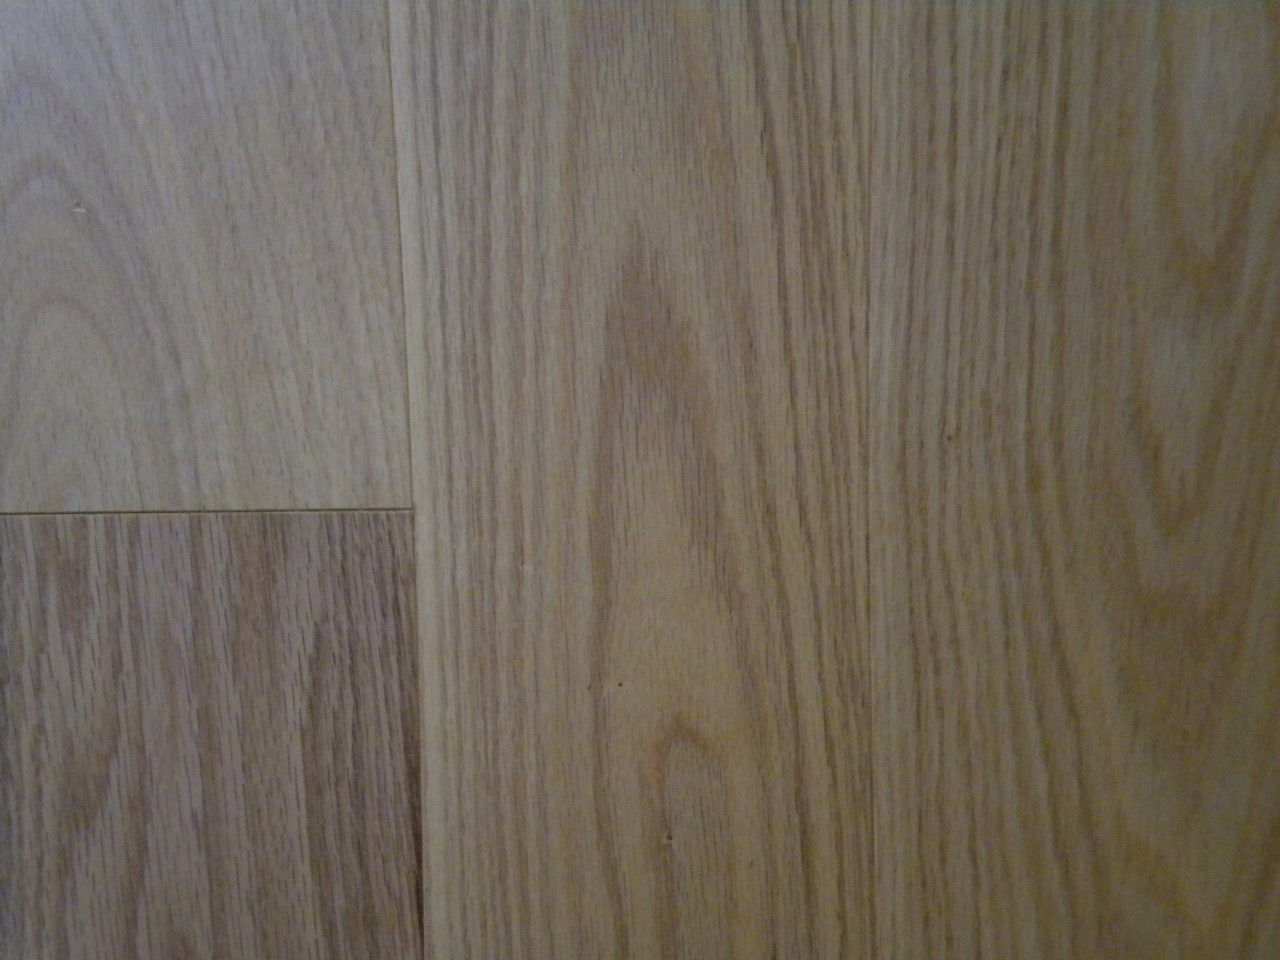 Engineered Flooring Mirage Engineered Flooring Thickness